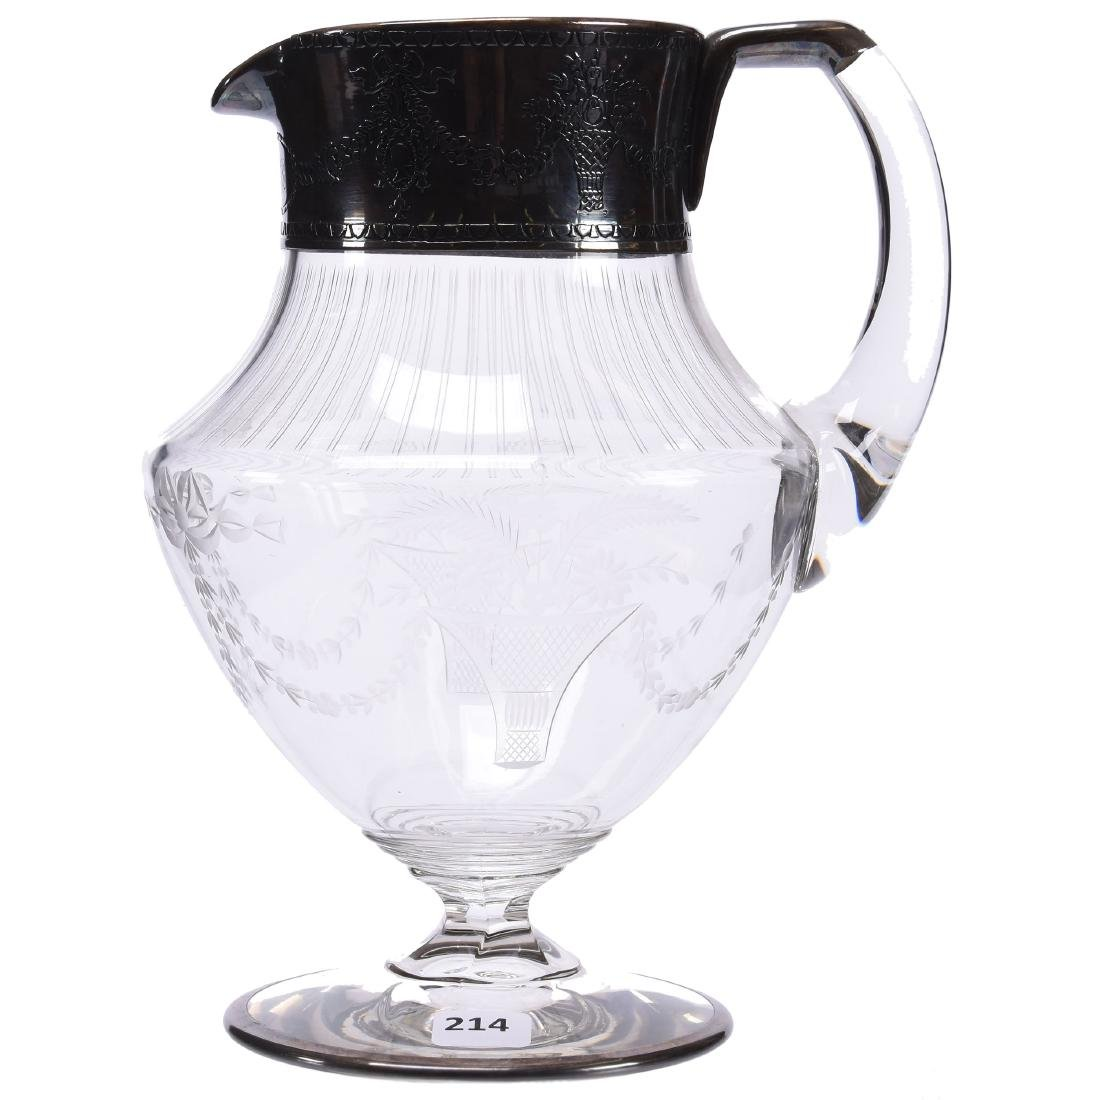 Pitcher, Engraved Floral Garland Motif